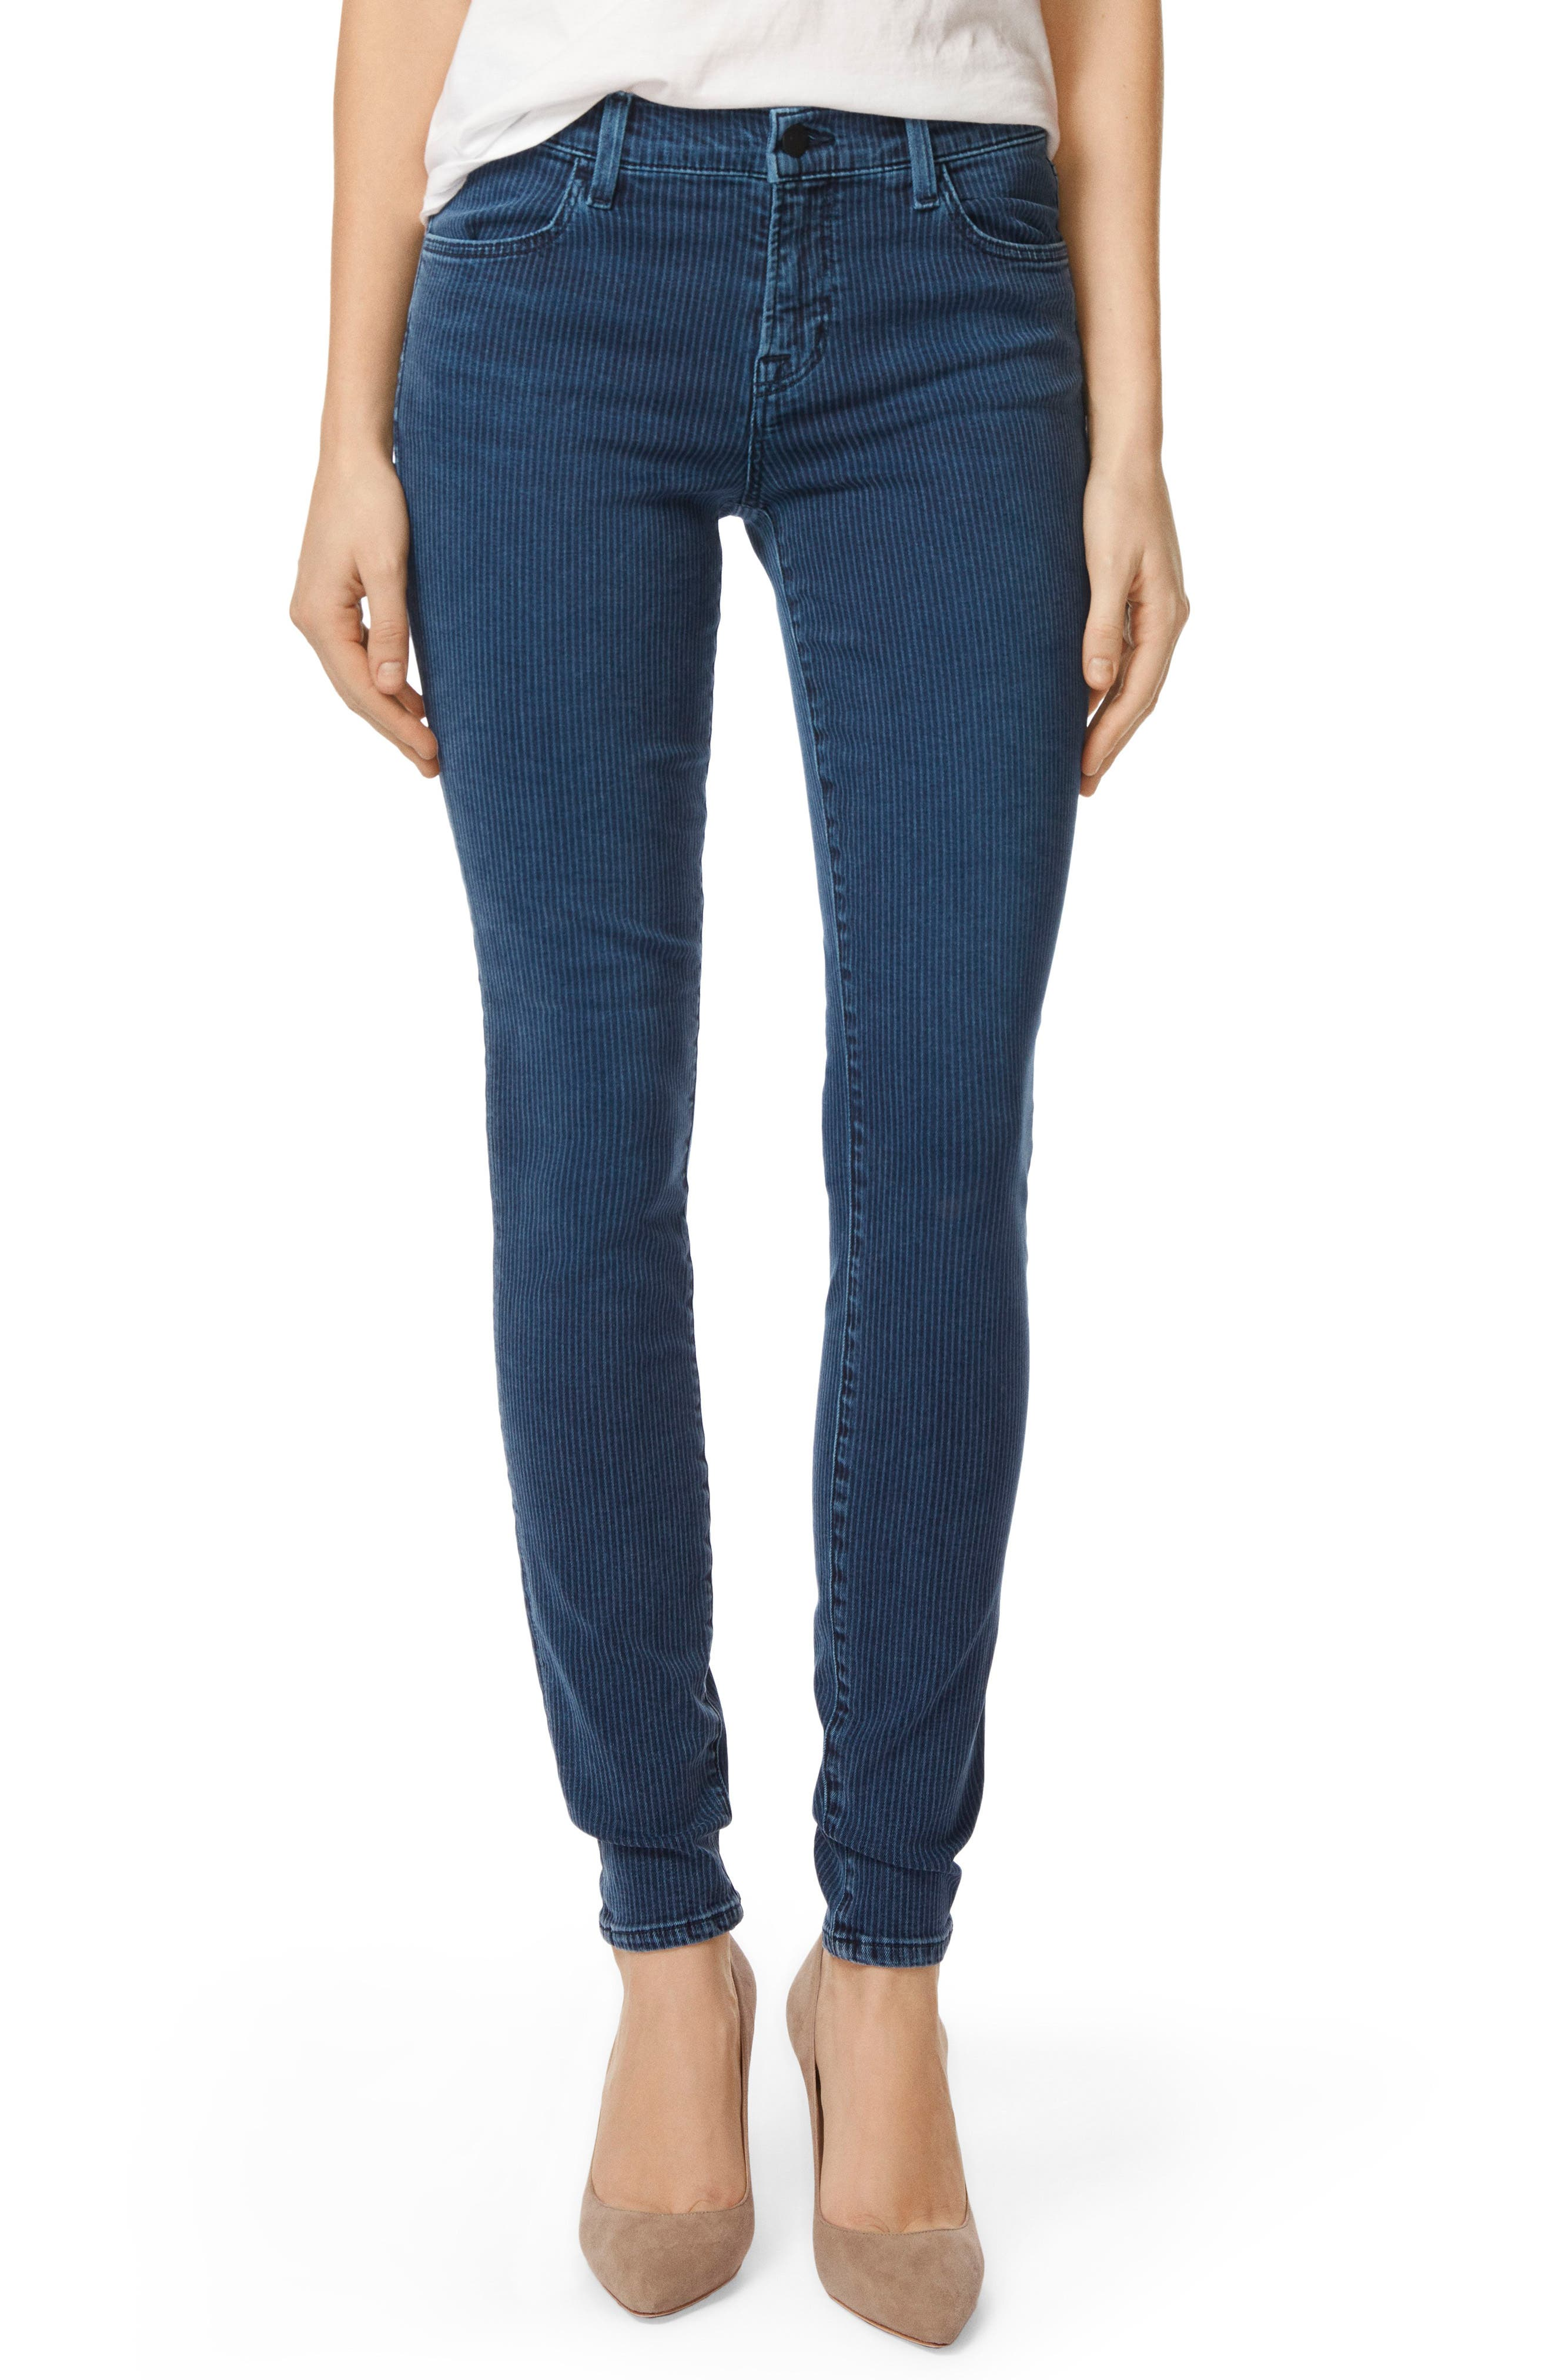 620 Super Skinny Jeans,                             Main thumbnail 1, color,                             404